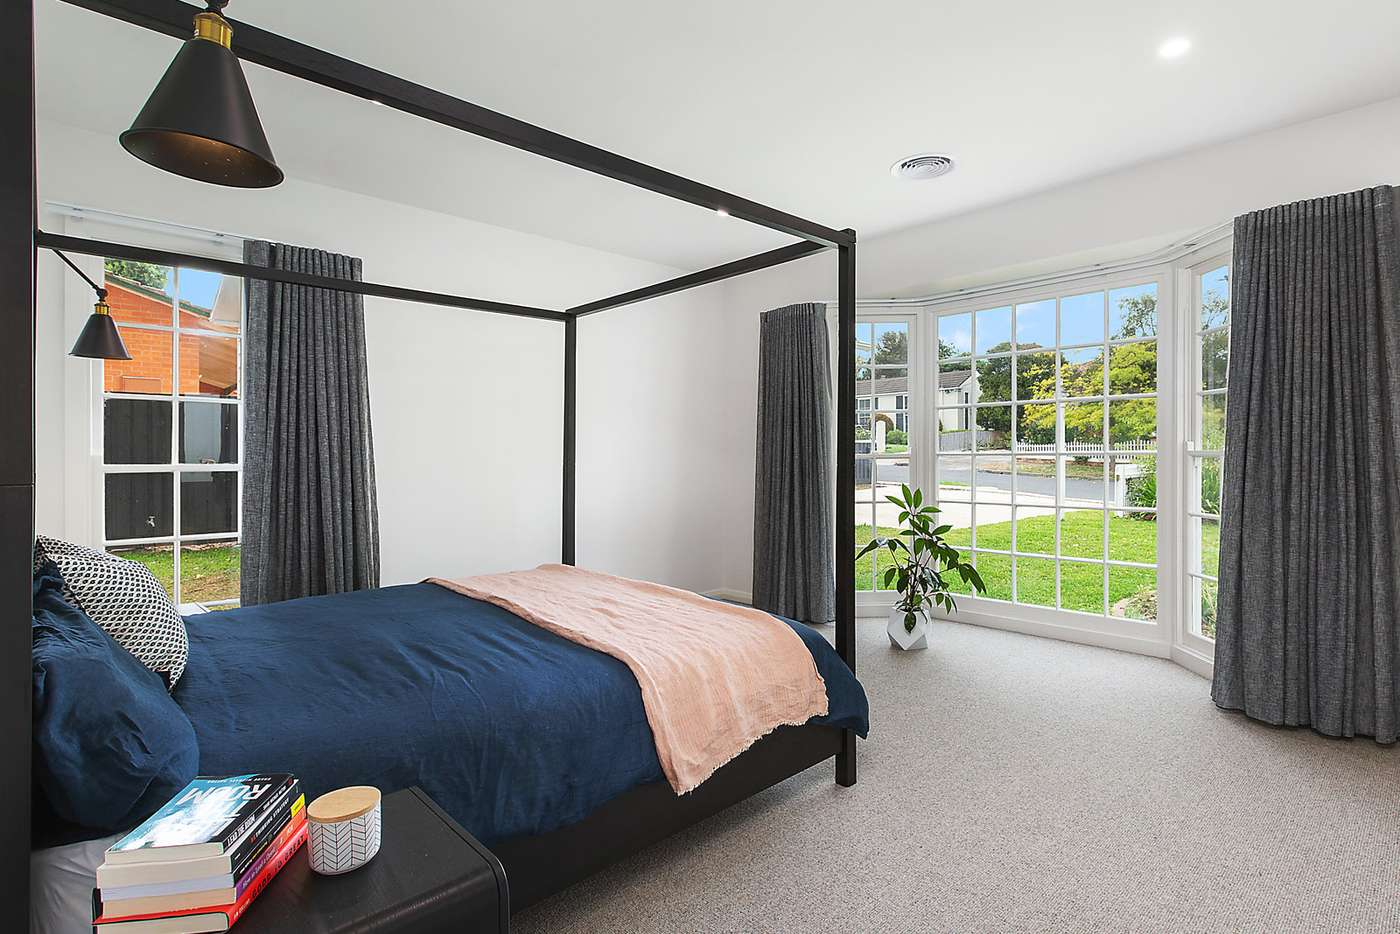 Sixth view of Homely house listing, 4 Windmill Street, Newtown VIC 3220